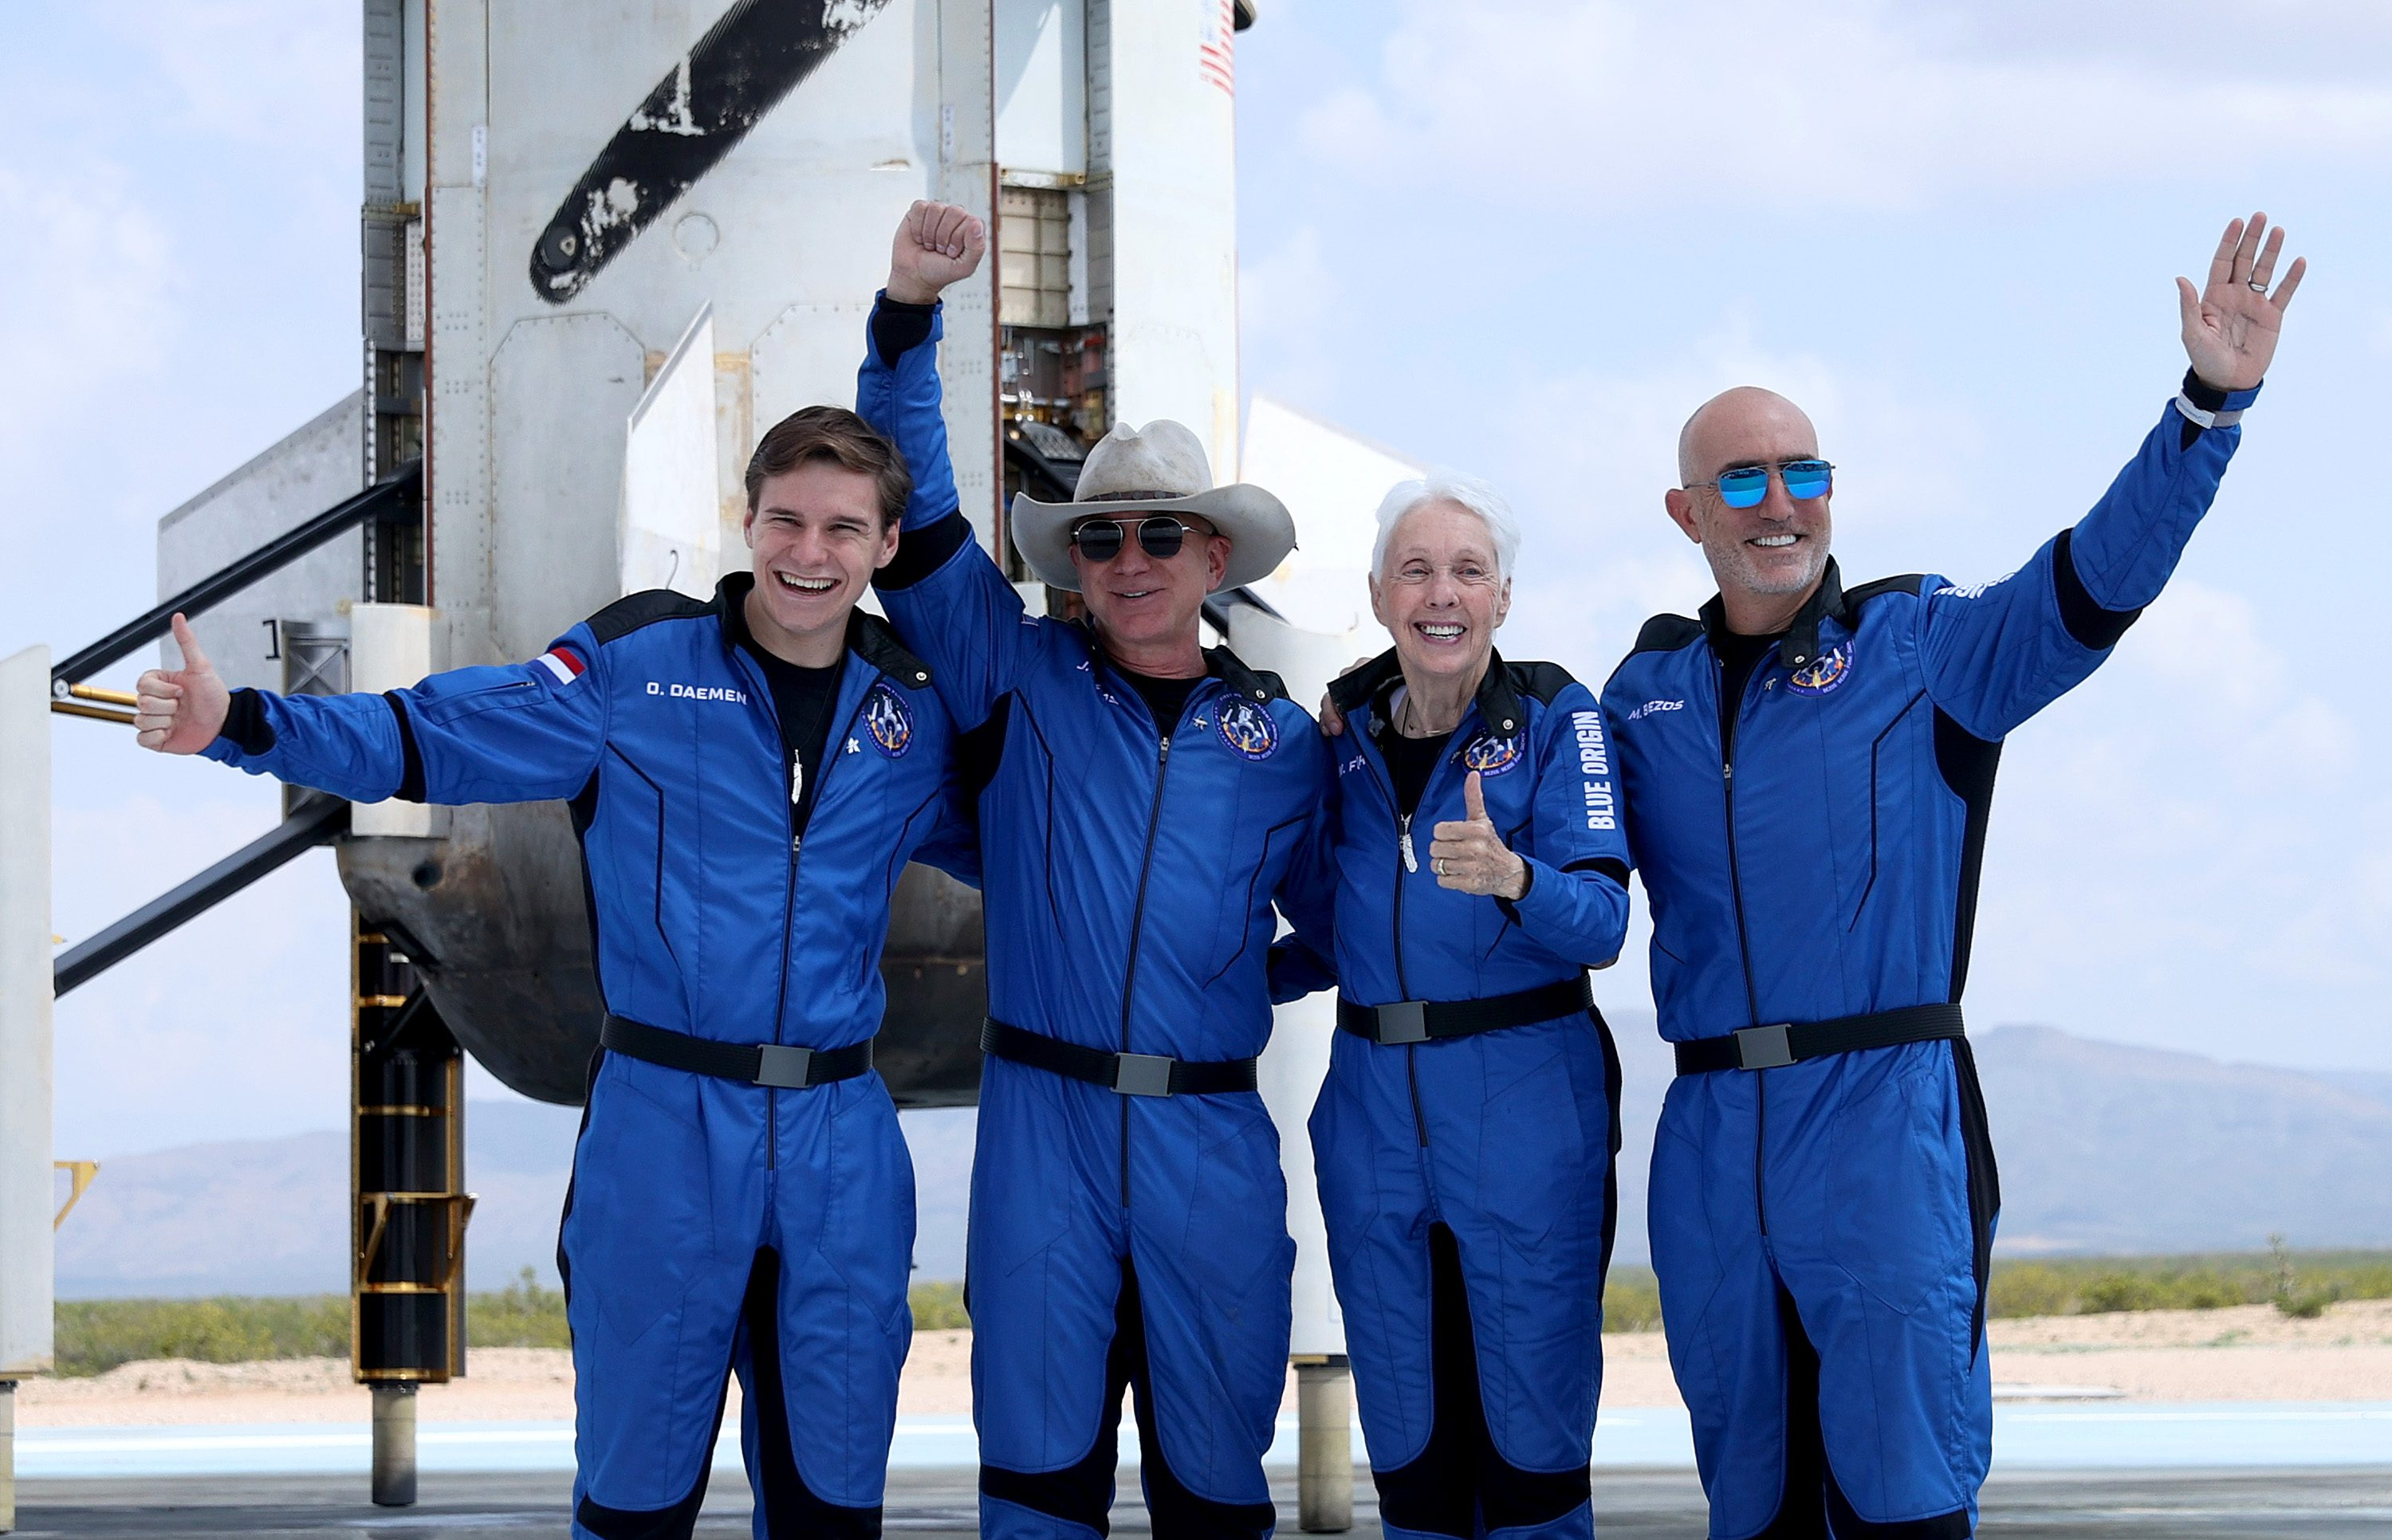 Jeff Bezos' Blue Origin New Shepard Space Vehicle Flies The Billionaire And Other Passengers To Space